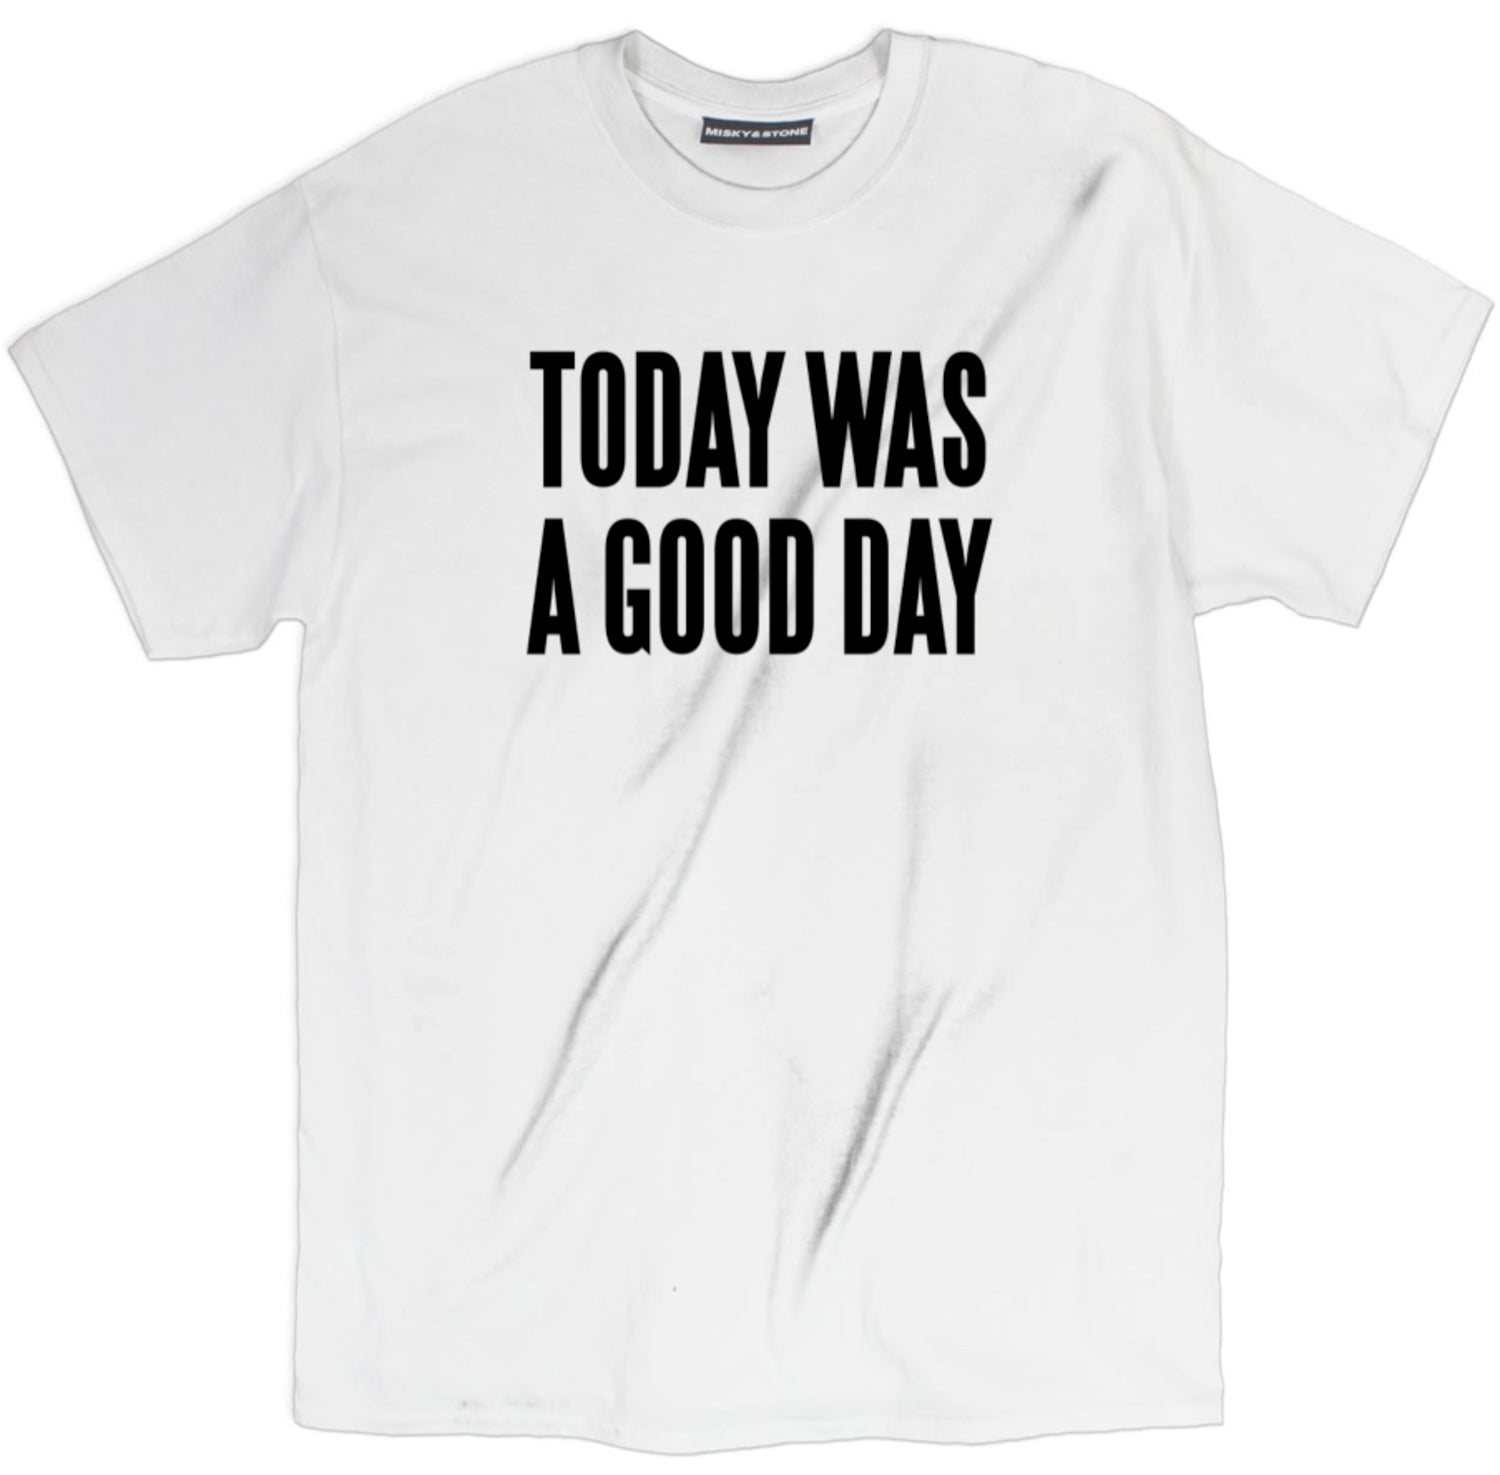 today was a good day shirt, hip hop clothing, hip hop t shirts, hip hop tees, hip hop shirts, vintage hip hop t shirts, rap t shirts, hip hop tee shirts, rapper shirts, hip hop merch, rap tees, 90s hip hop t shirts, hip hop legends shirt,